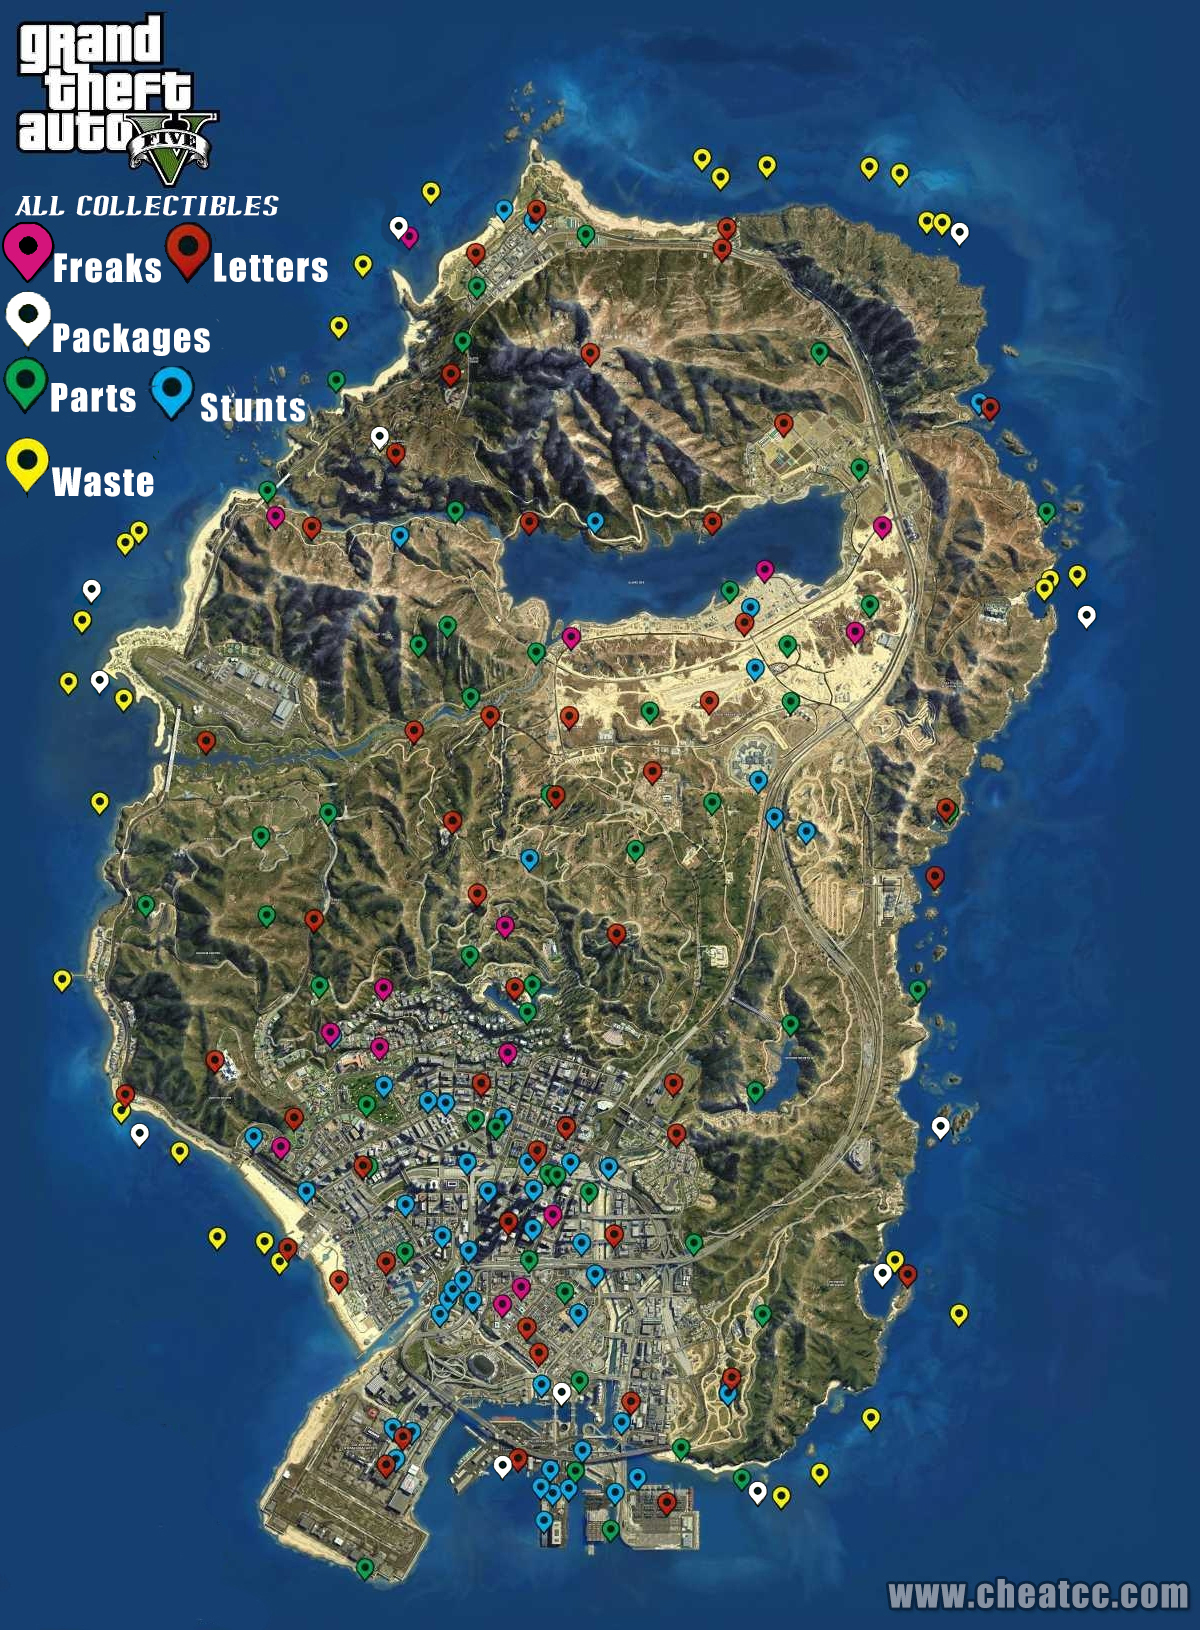 Grand Theft Auto Gta V Gta Cheats Codes Cheat Codes